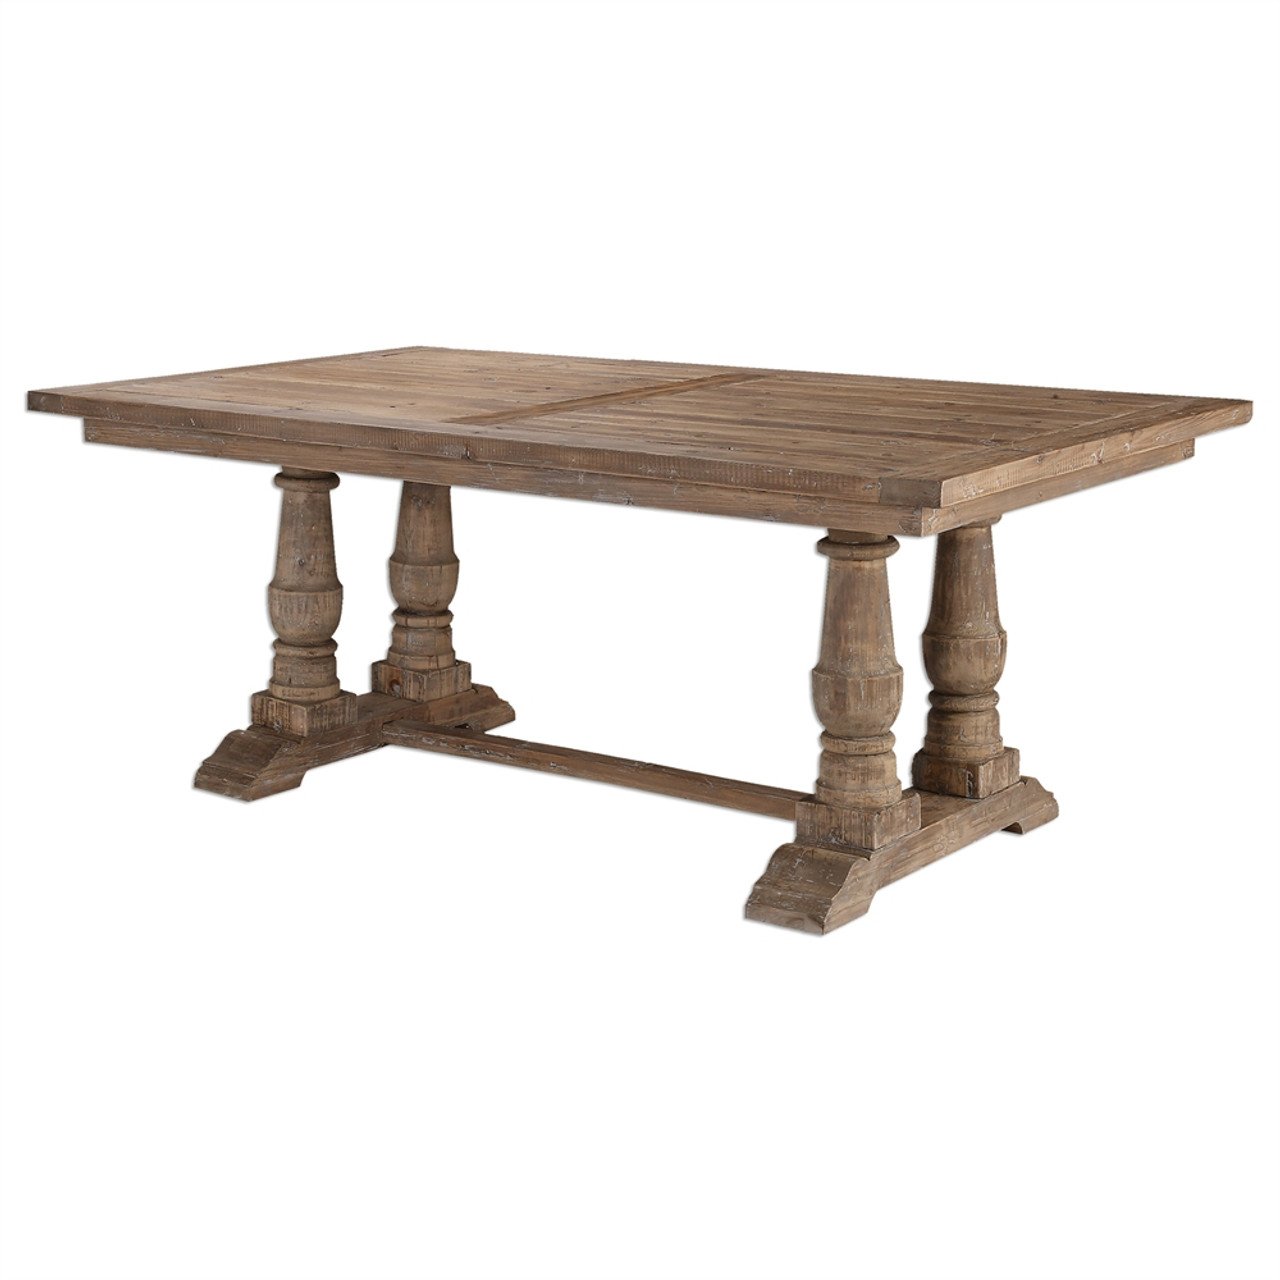 Encouraging Extensions Salvaged Wood Trestle Table Salvaged Wood Trestle Table Zin Home Trestle Table Dimensions Trestle Table houzz-03 Trestle Dining Table